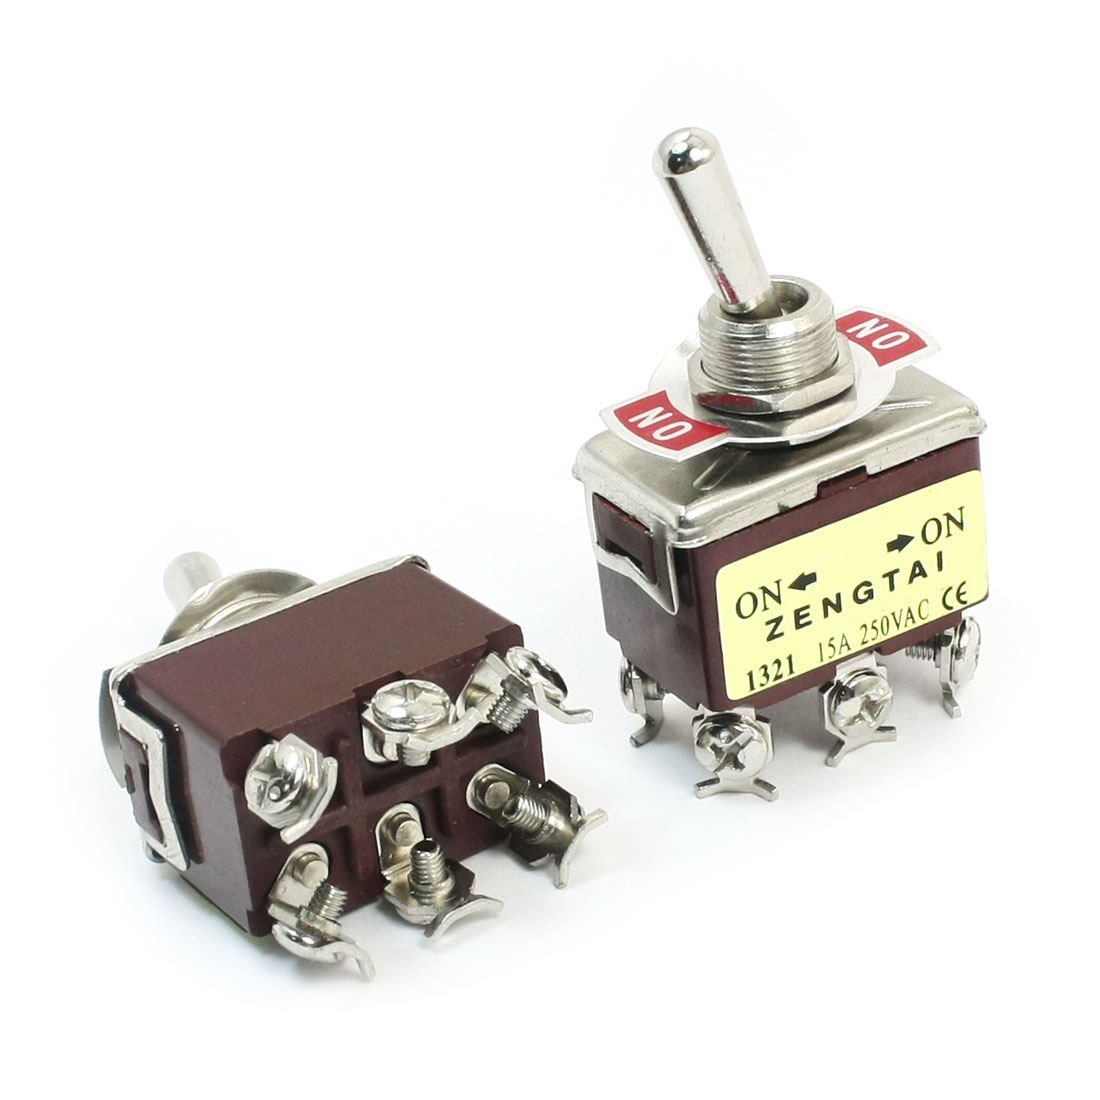 DPDT ON/ON 2 Position Power Control Toggle Switch AC 250V 15A E-TEN1321 2pcs